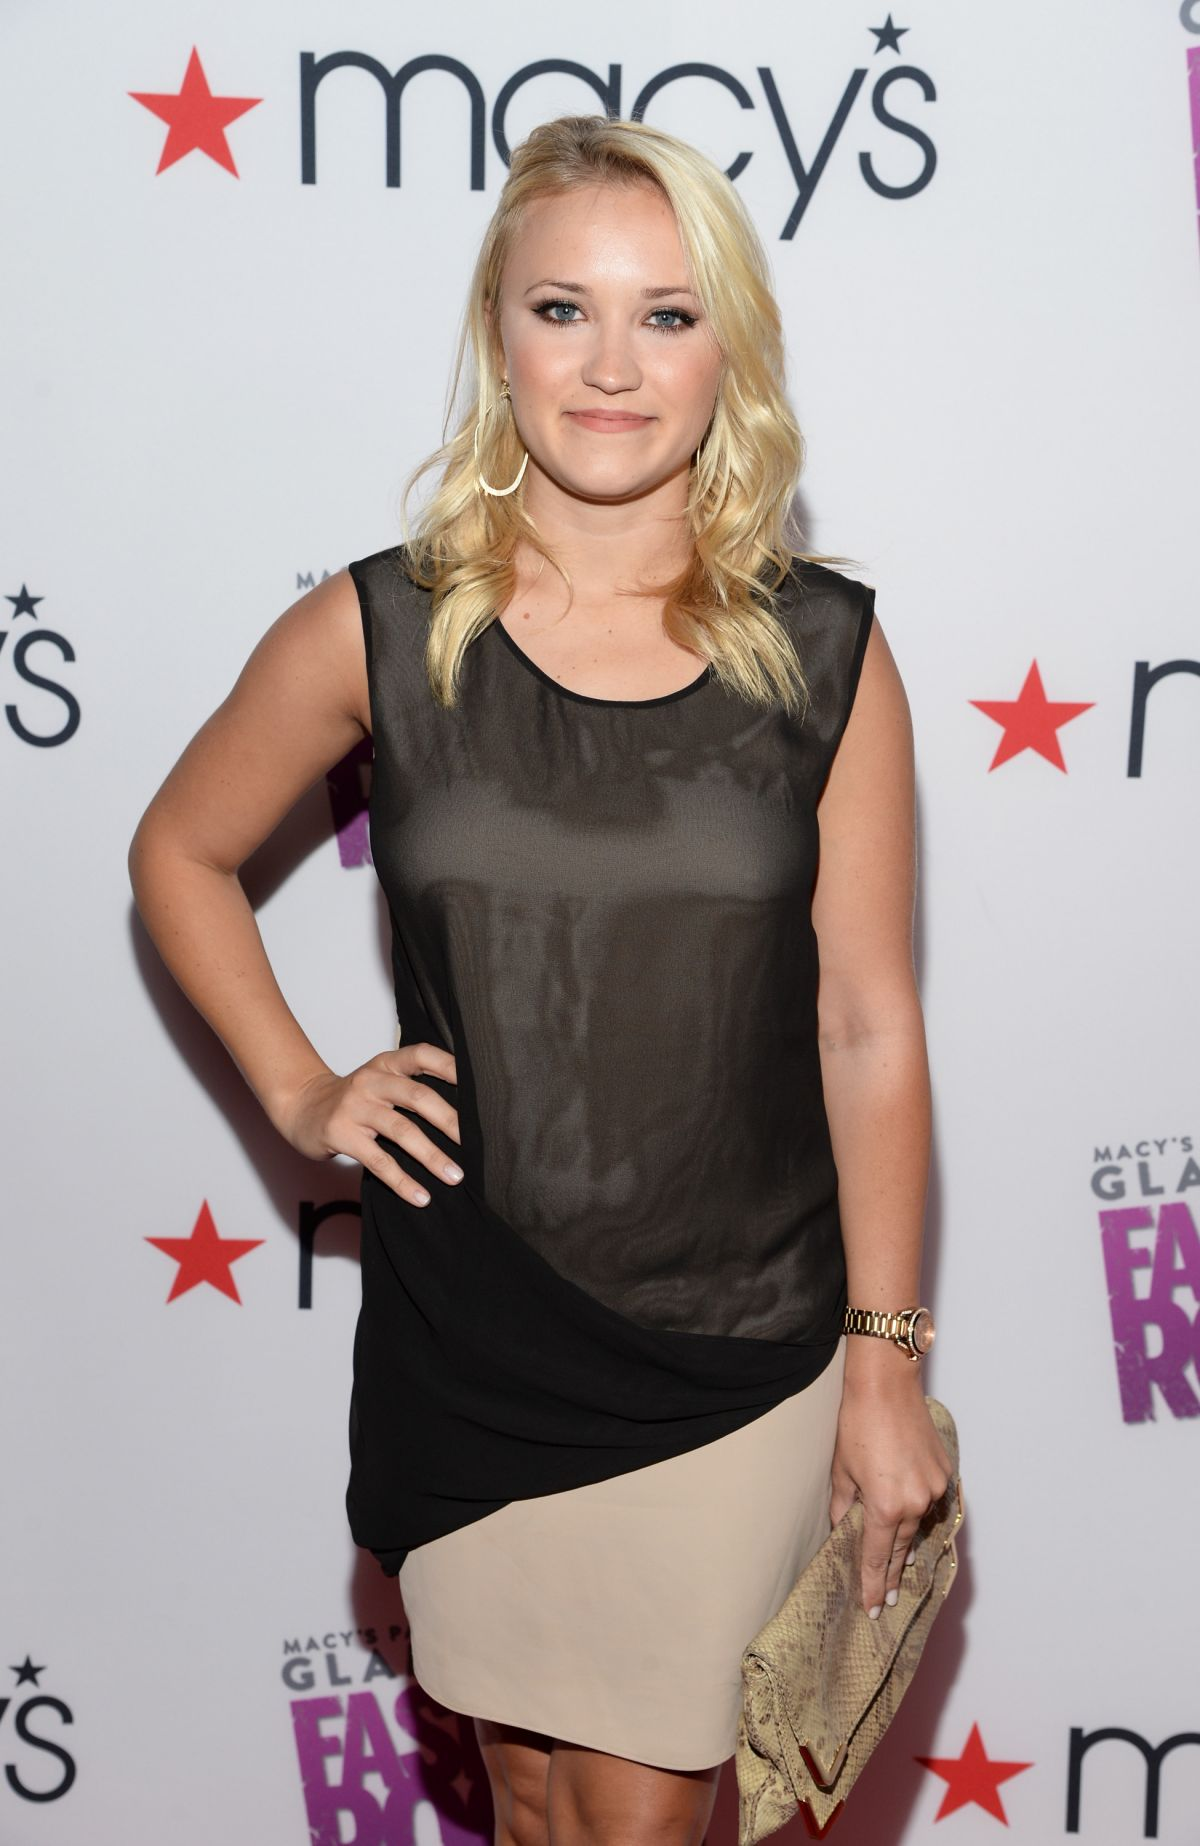 EMILY OSMENT at Glamorama Fashion Rocks Event in Los Angeles